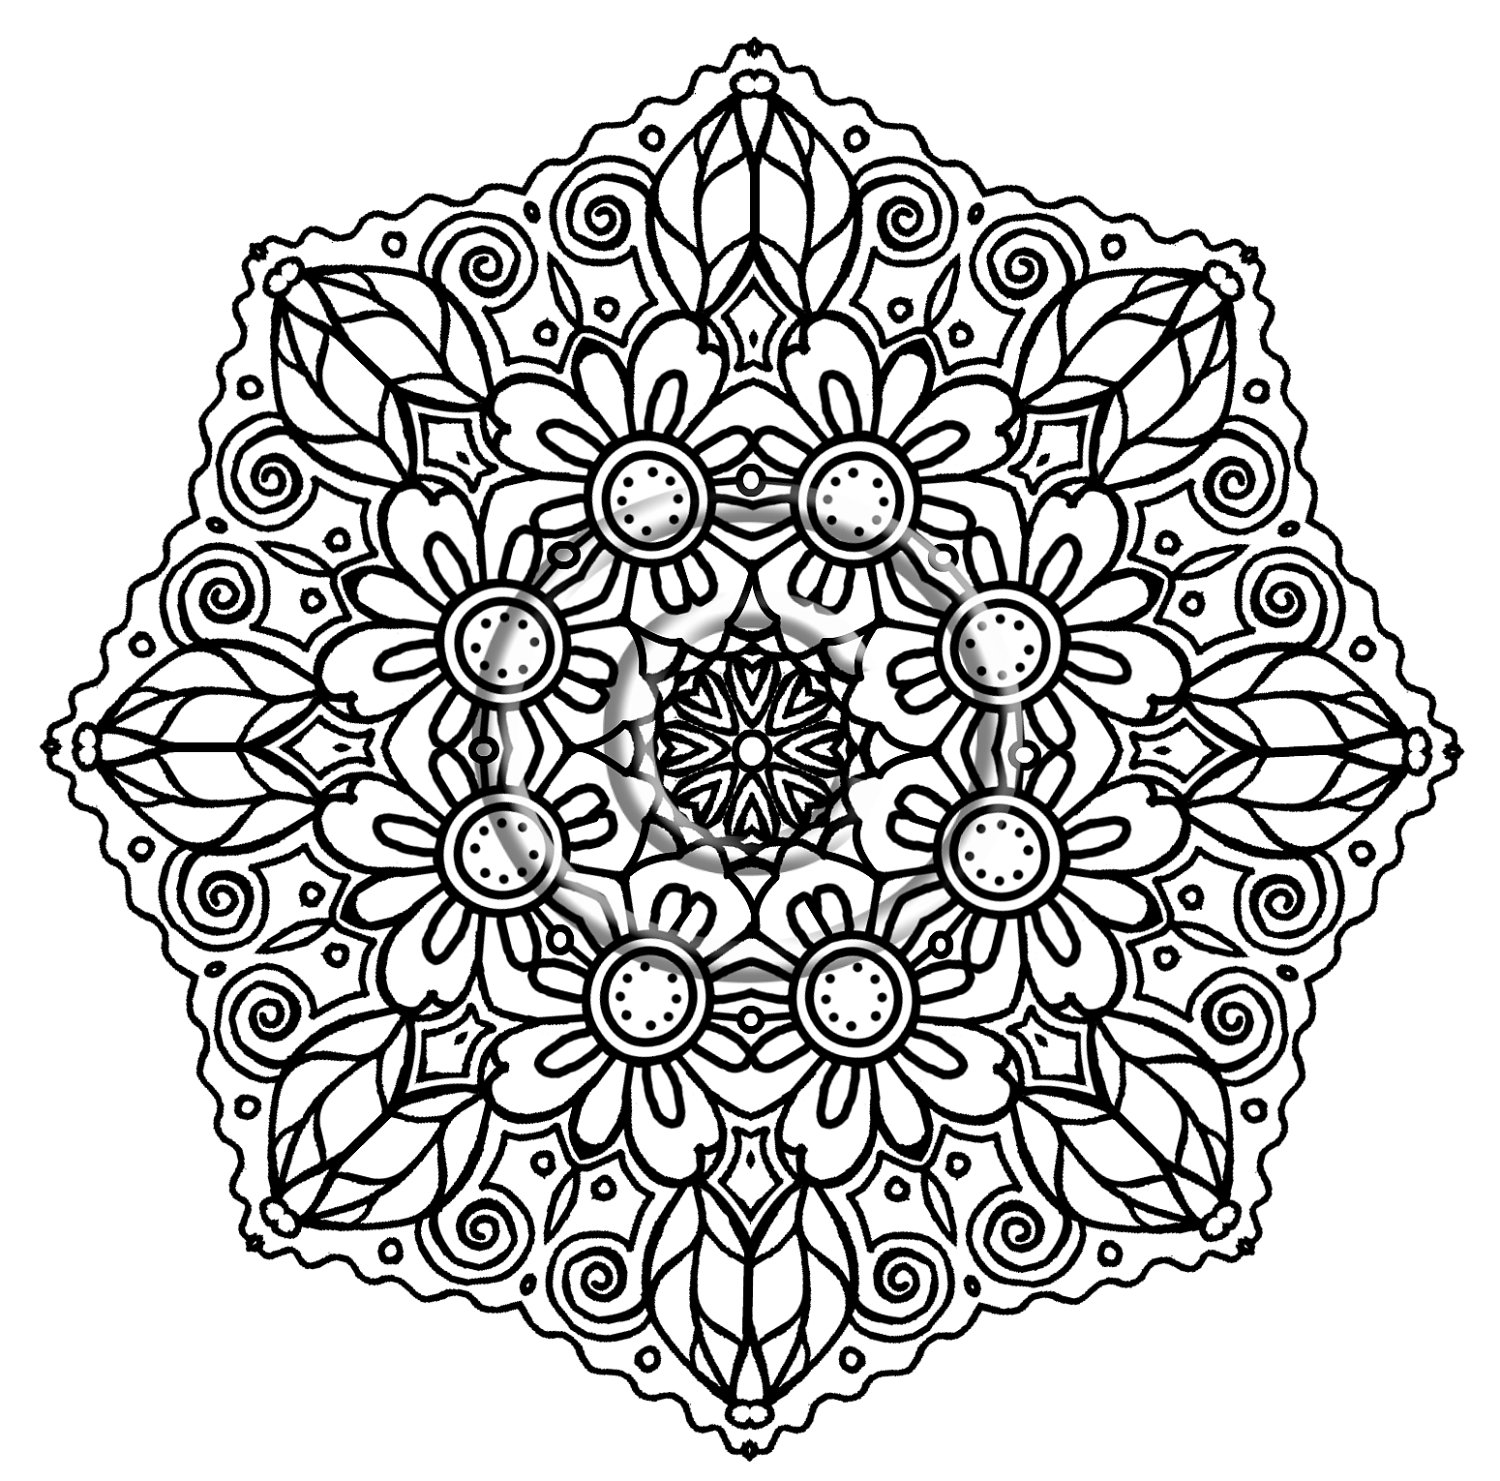 1500x1481 Color Mandalas Online Gallery Photos Mandala Coloring Pages